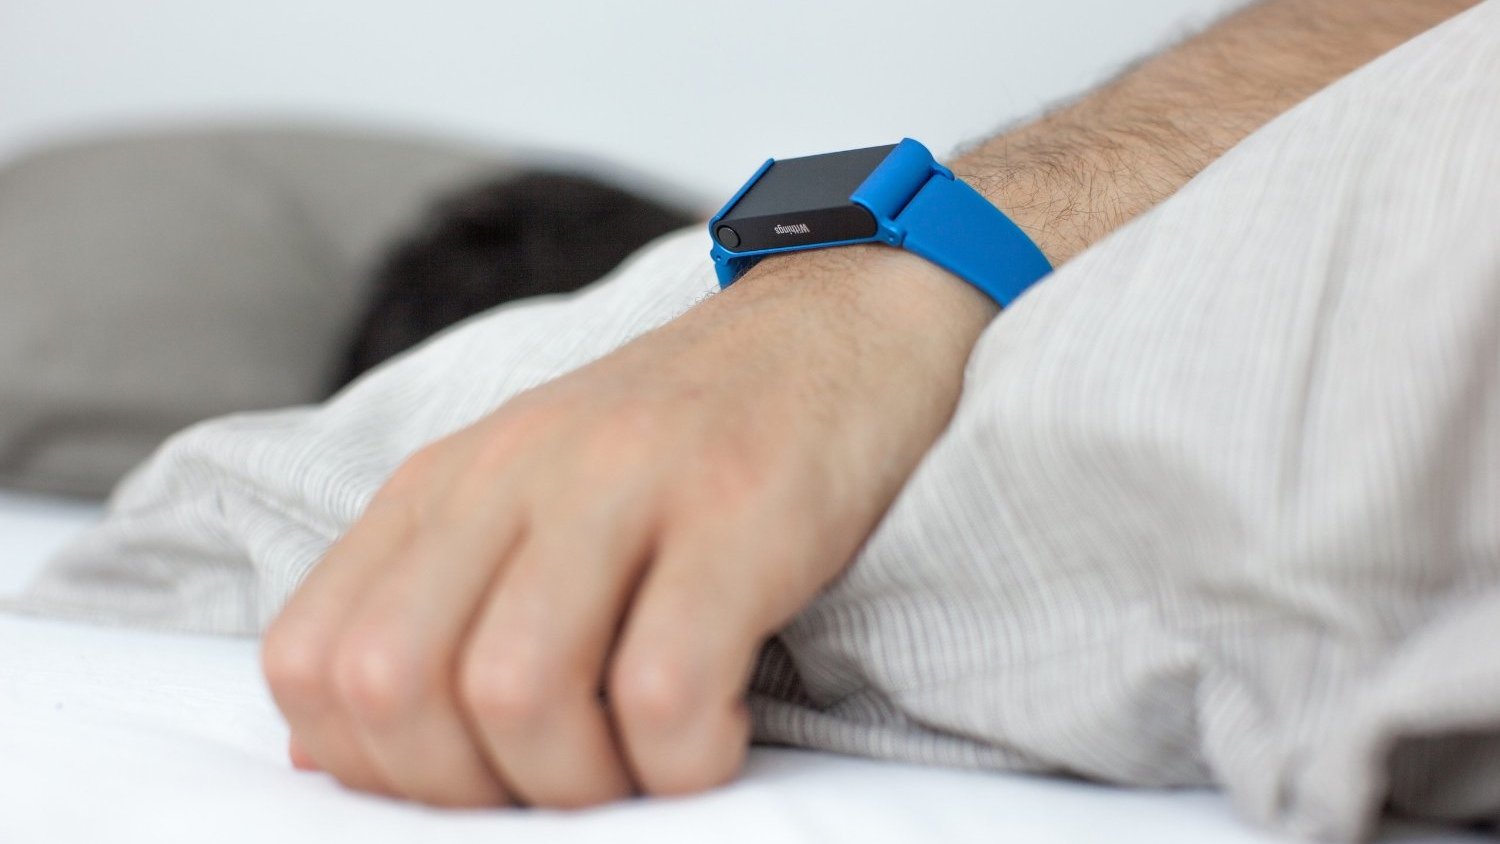 Do sleep trackers really work?